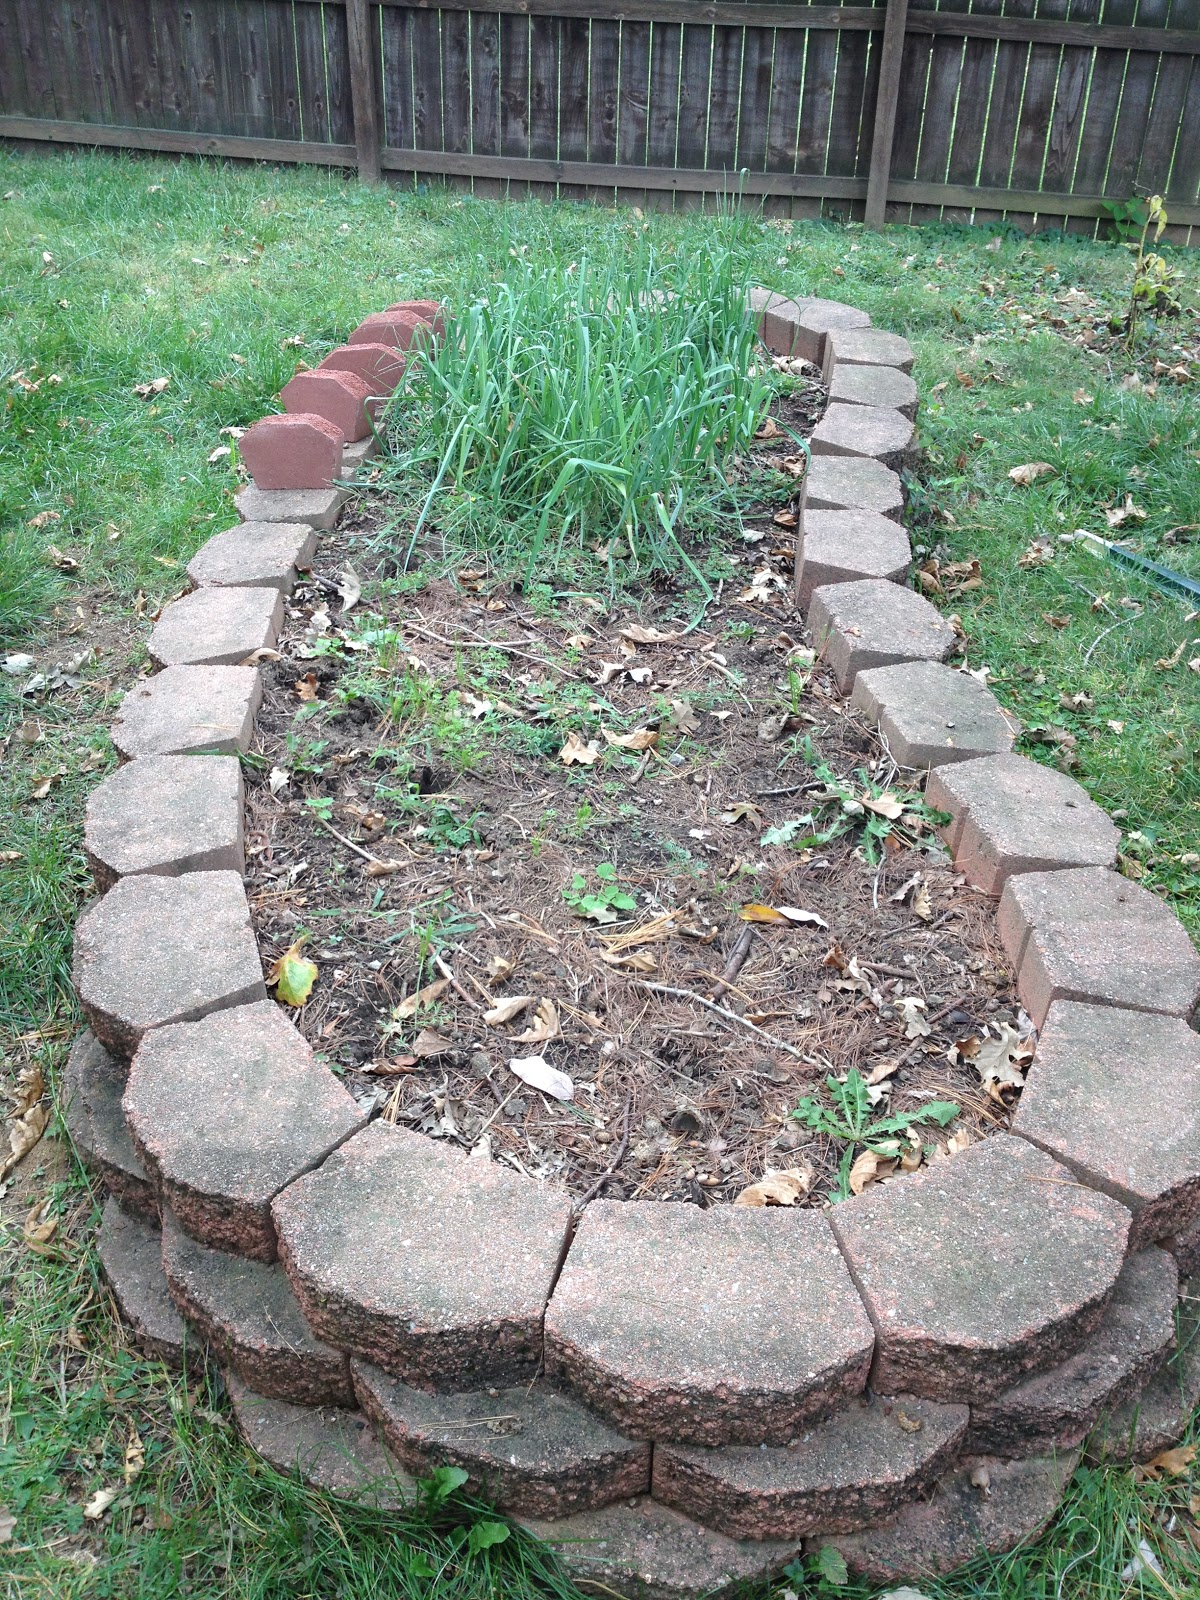 Ordinaire Raised Bed With Landscaping Bricks